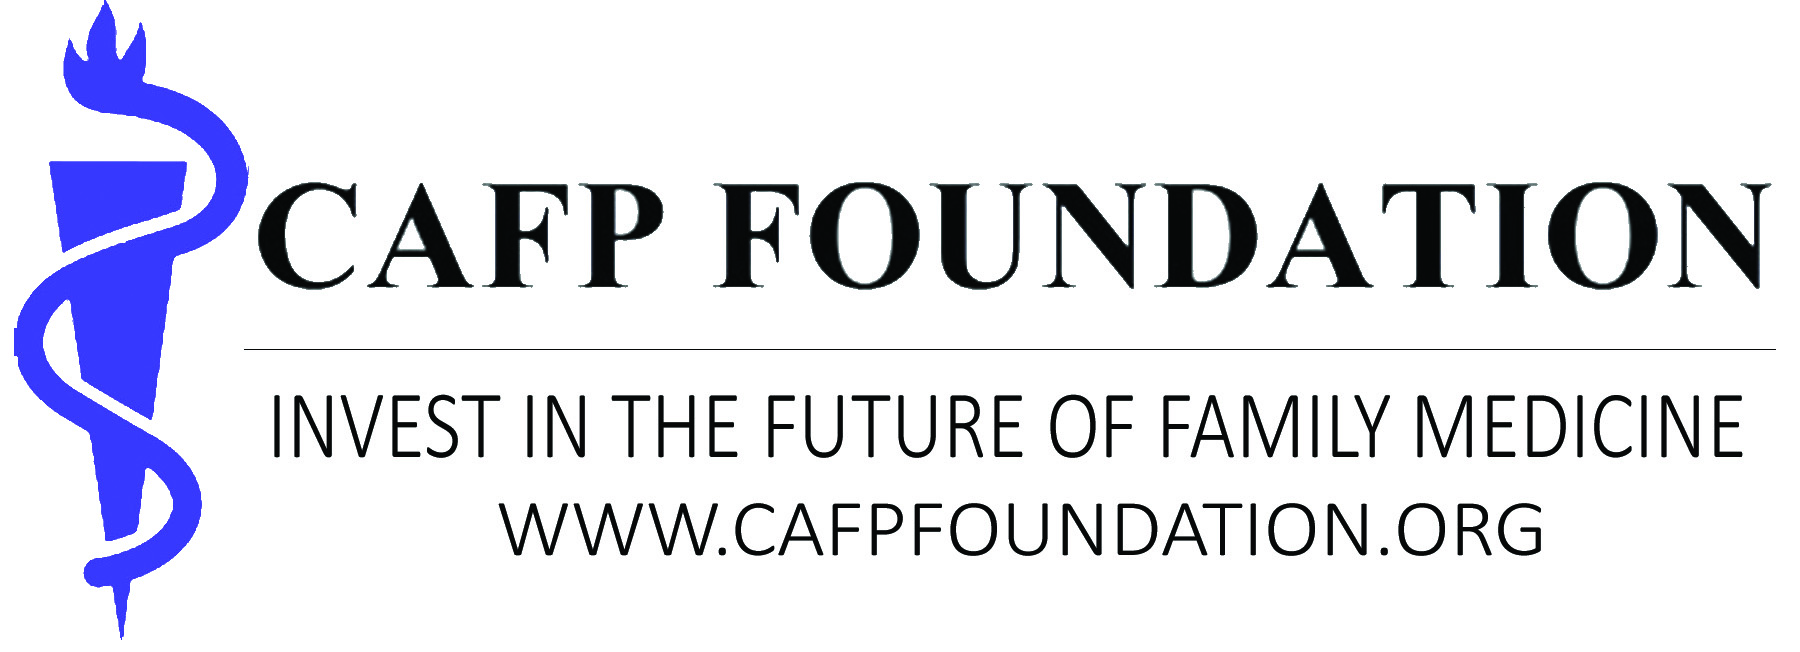 CAFP Foundation